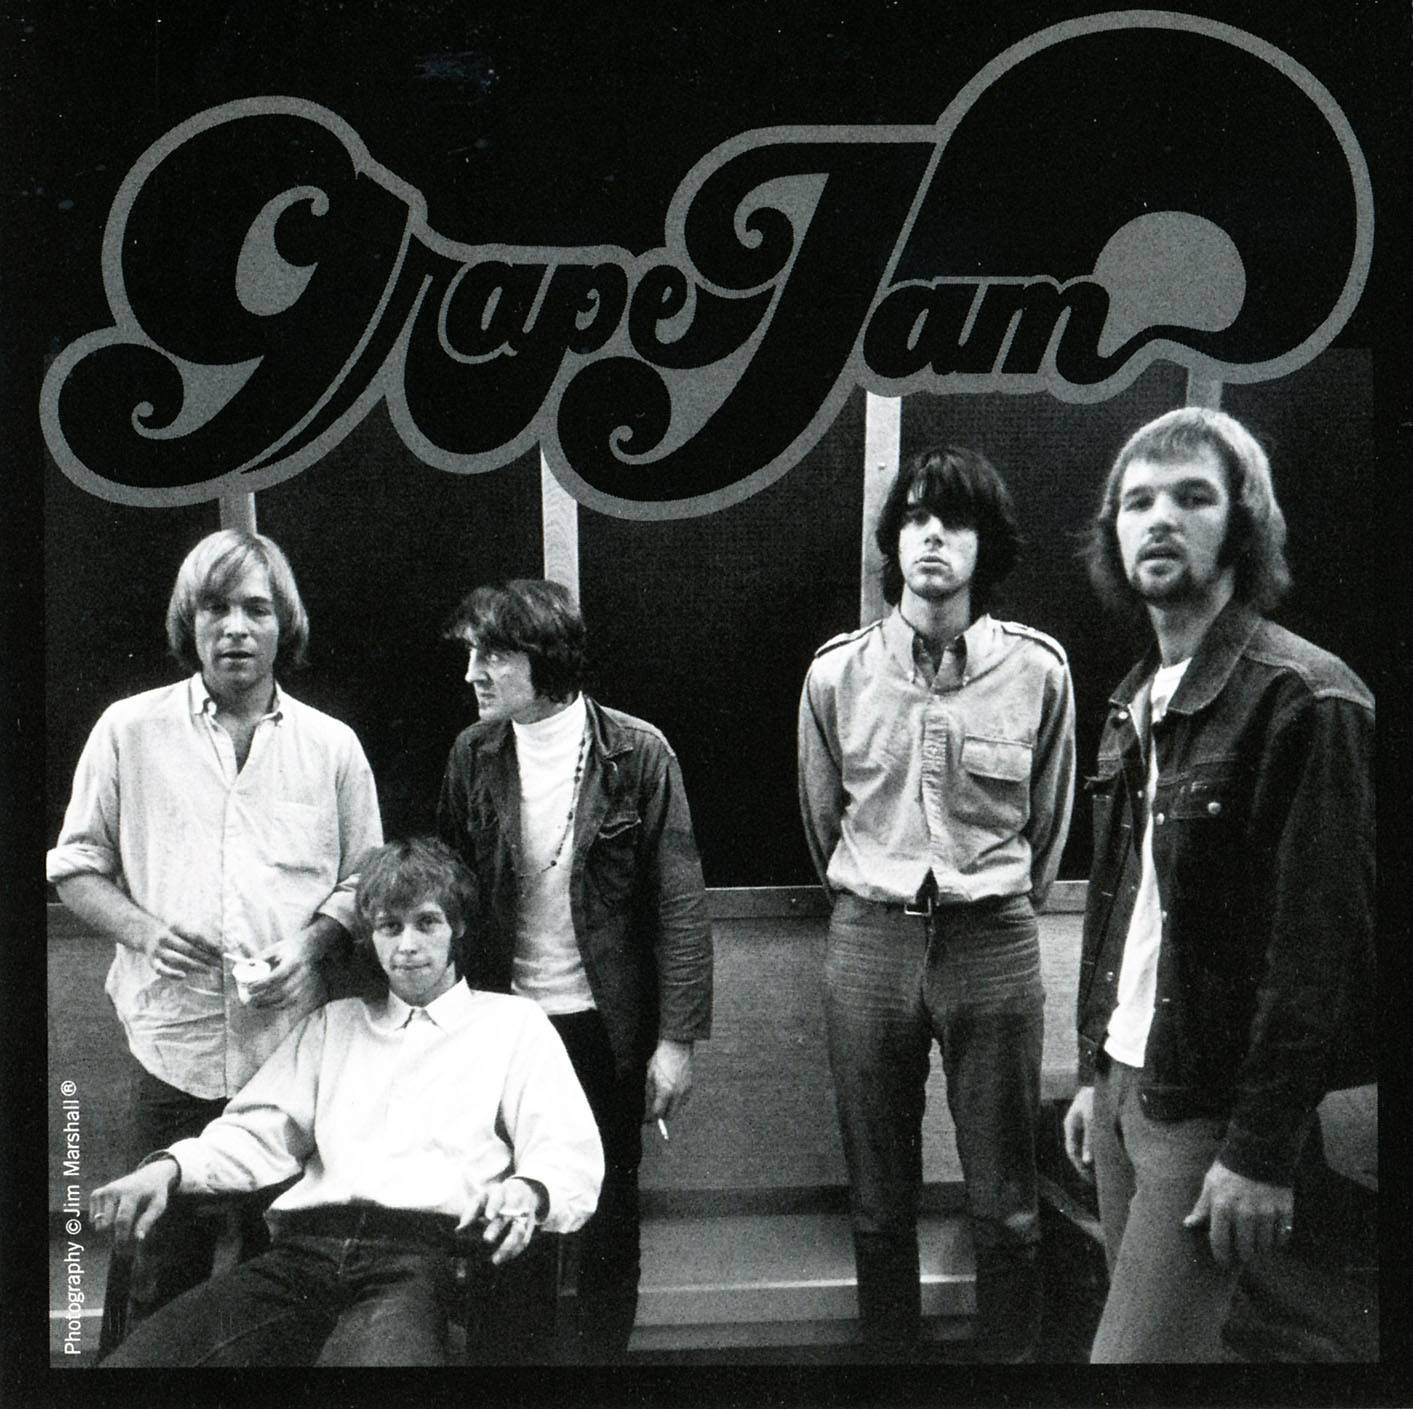 Moby Grape - Grape Jam (1968) Expanded Remastered 2007